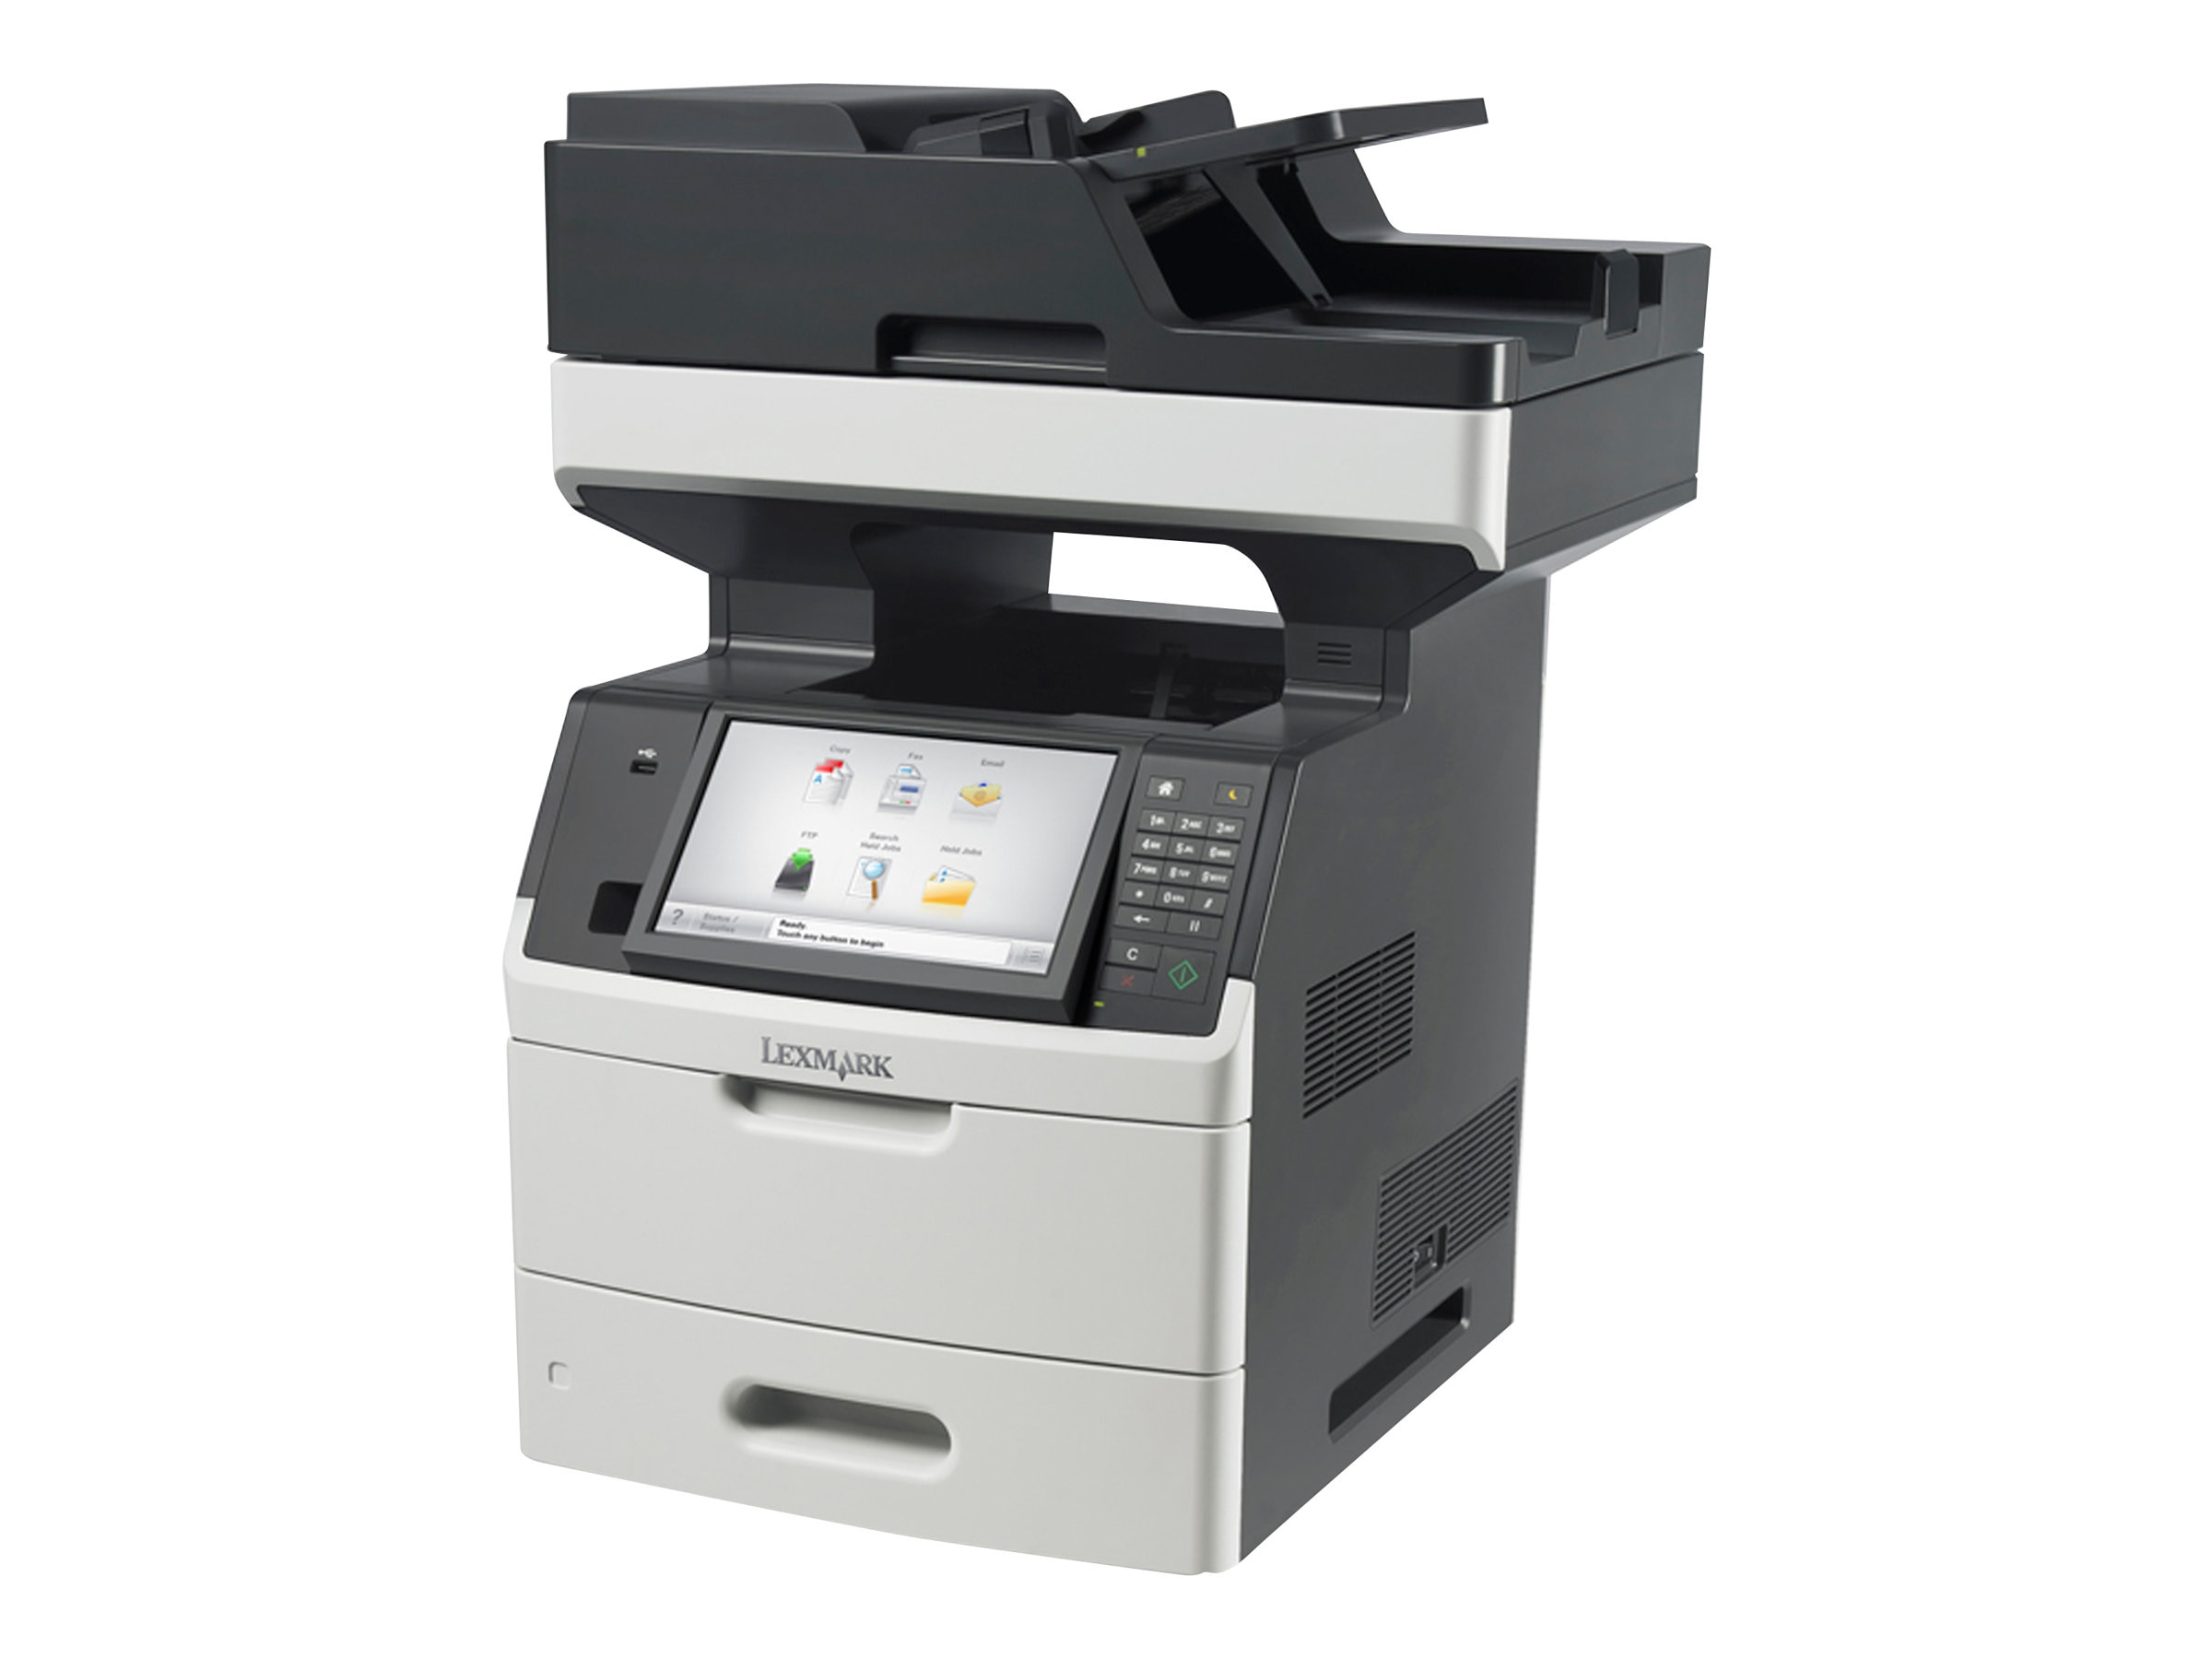 Lexmark MX711dhe Monochrome Laser Multifunction Printer